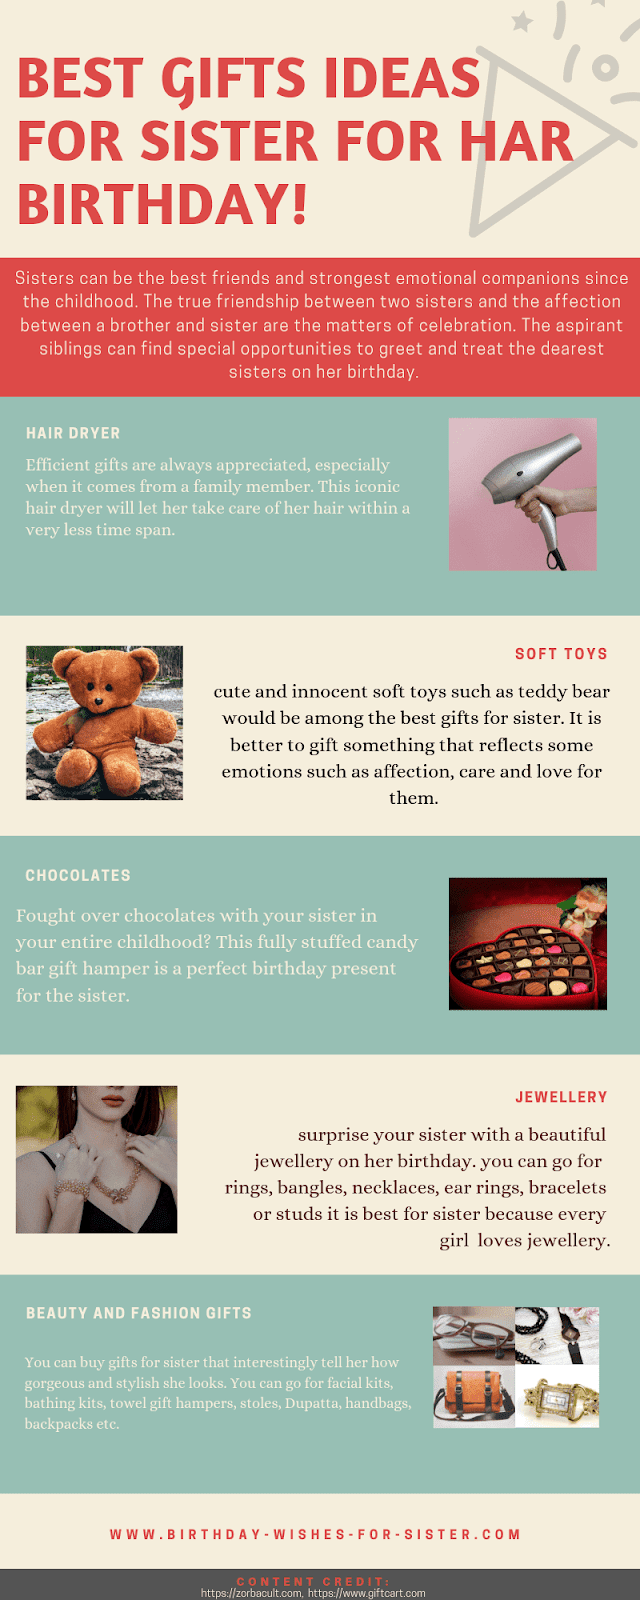 Best Birthday Gift Ideas For Sister Infograpic